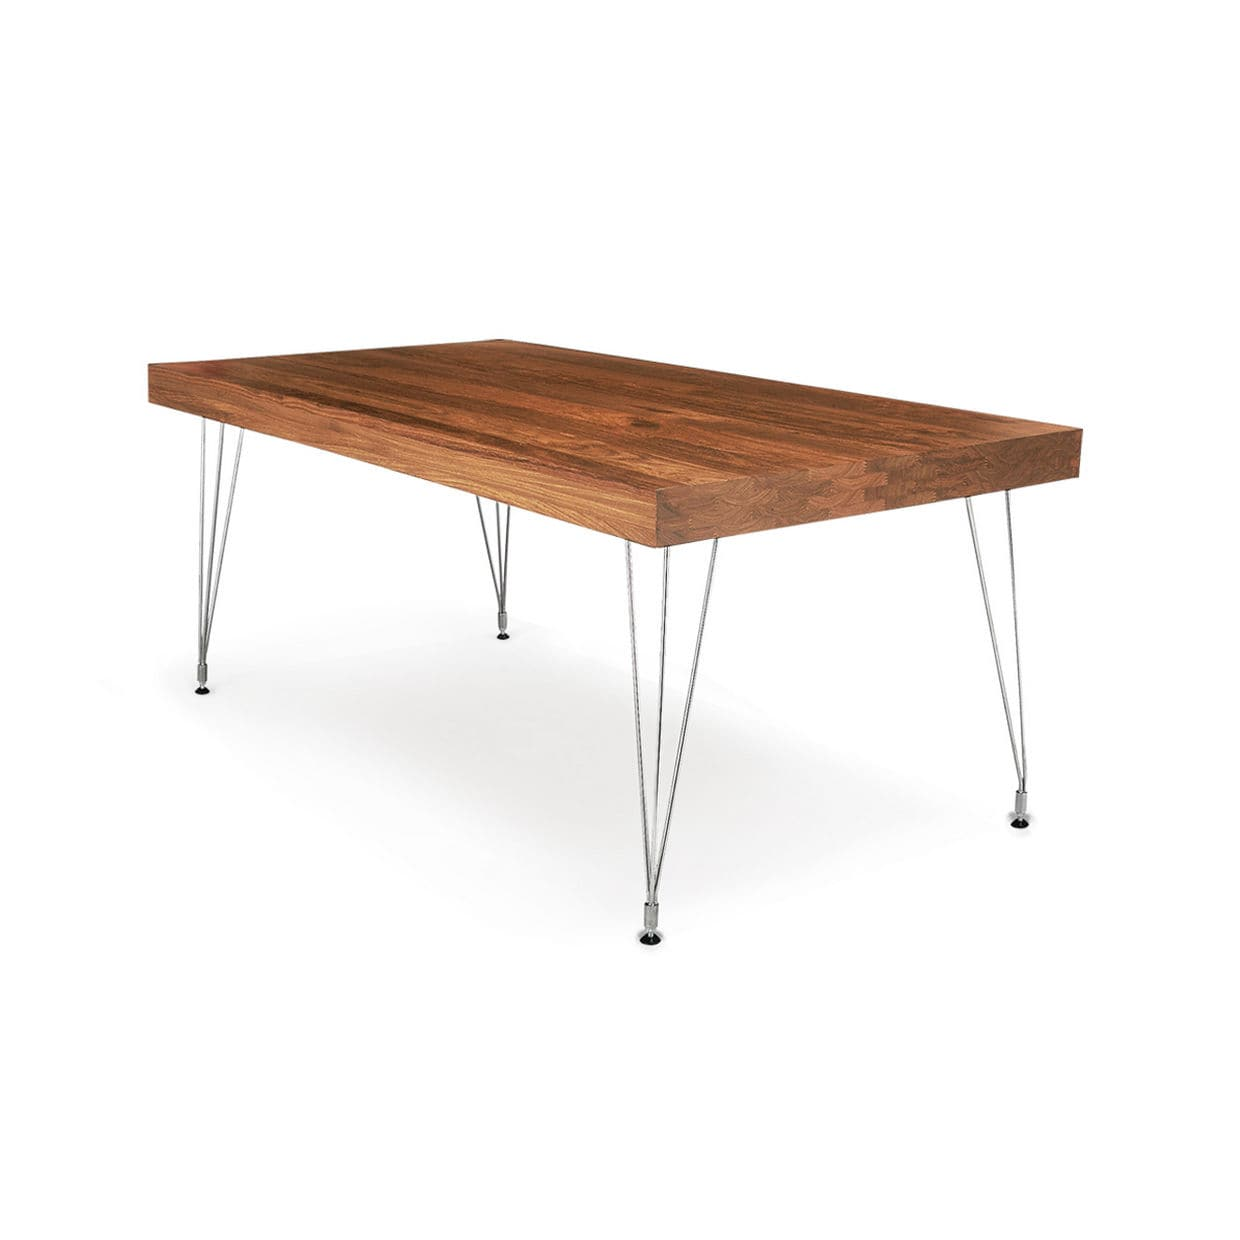 Contemporary Table Wooden Polished Stainless Steel Stainless - 6ft stainless steel table